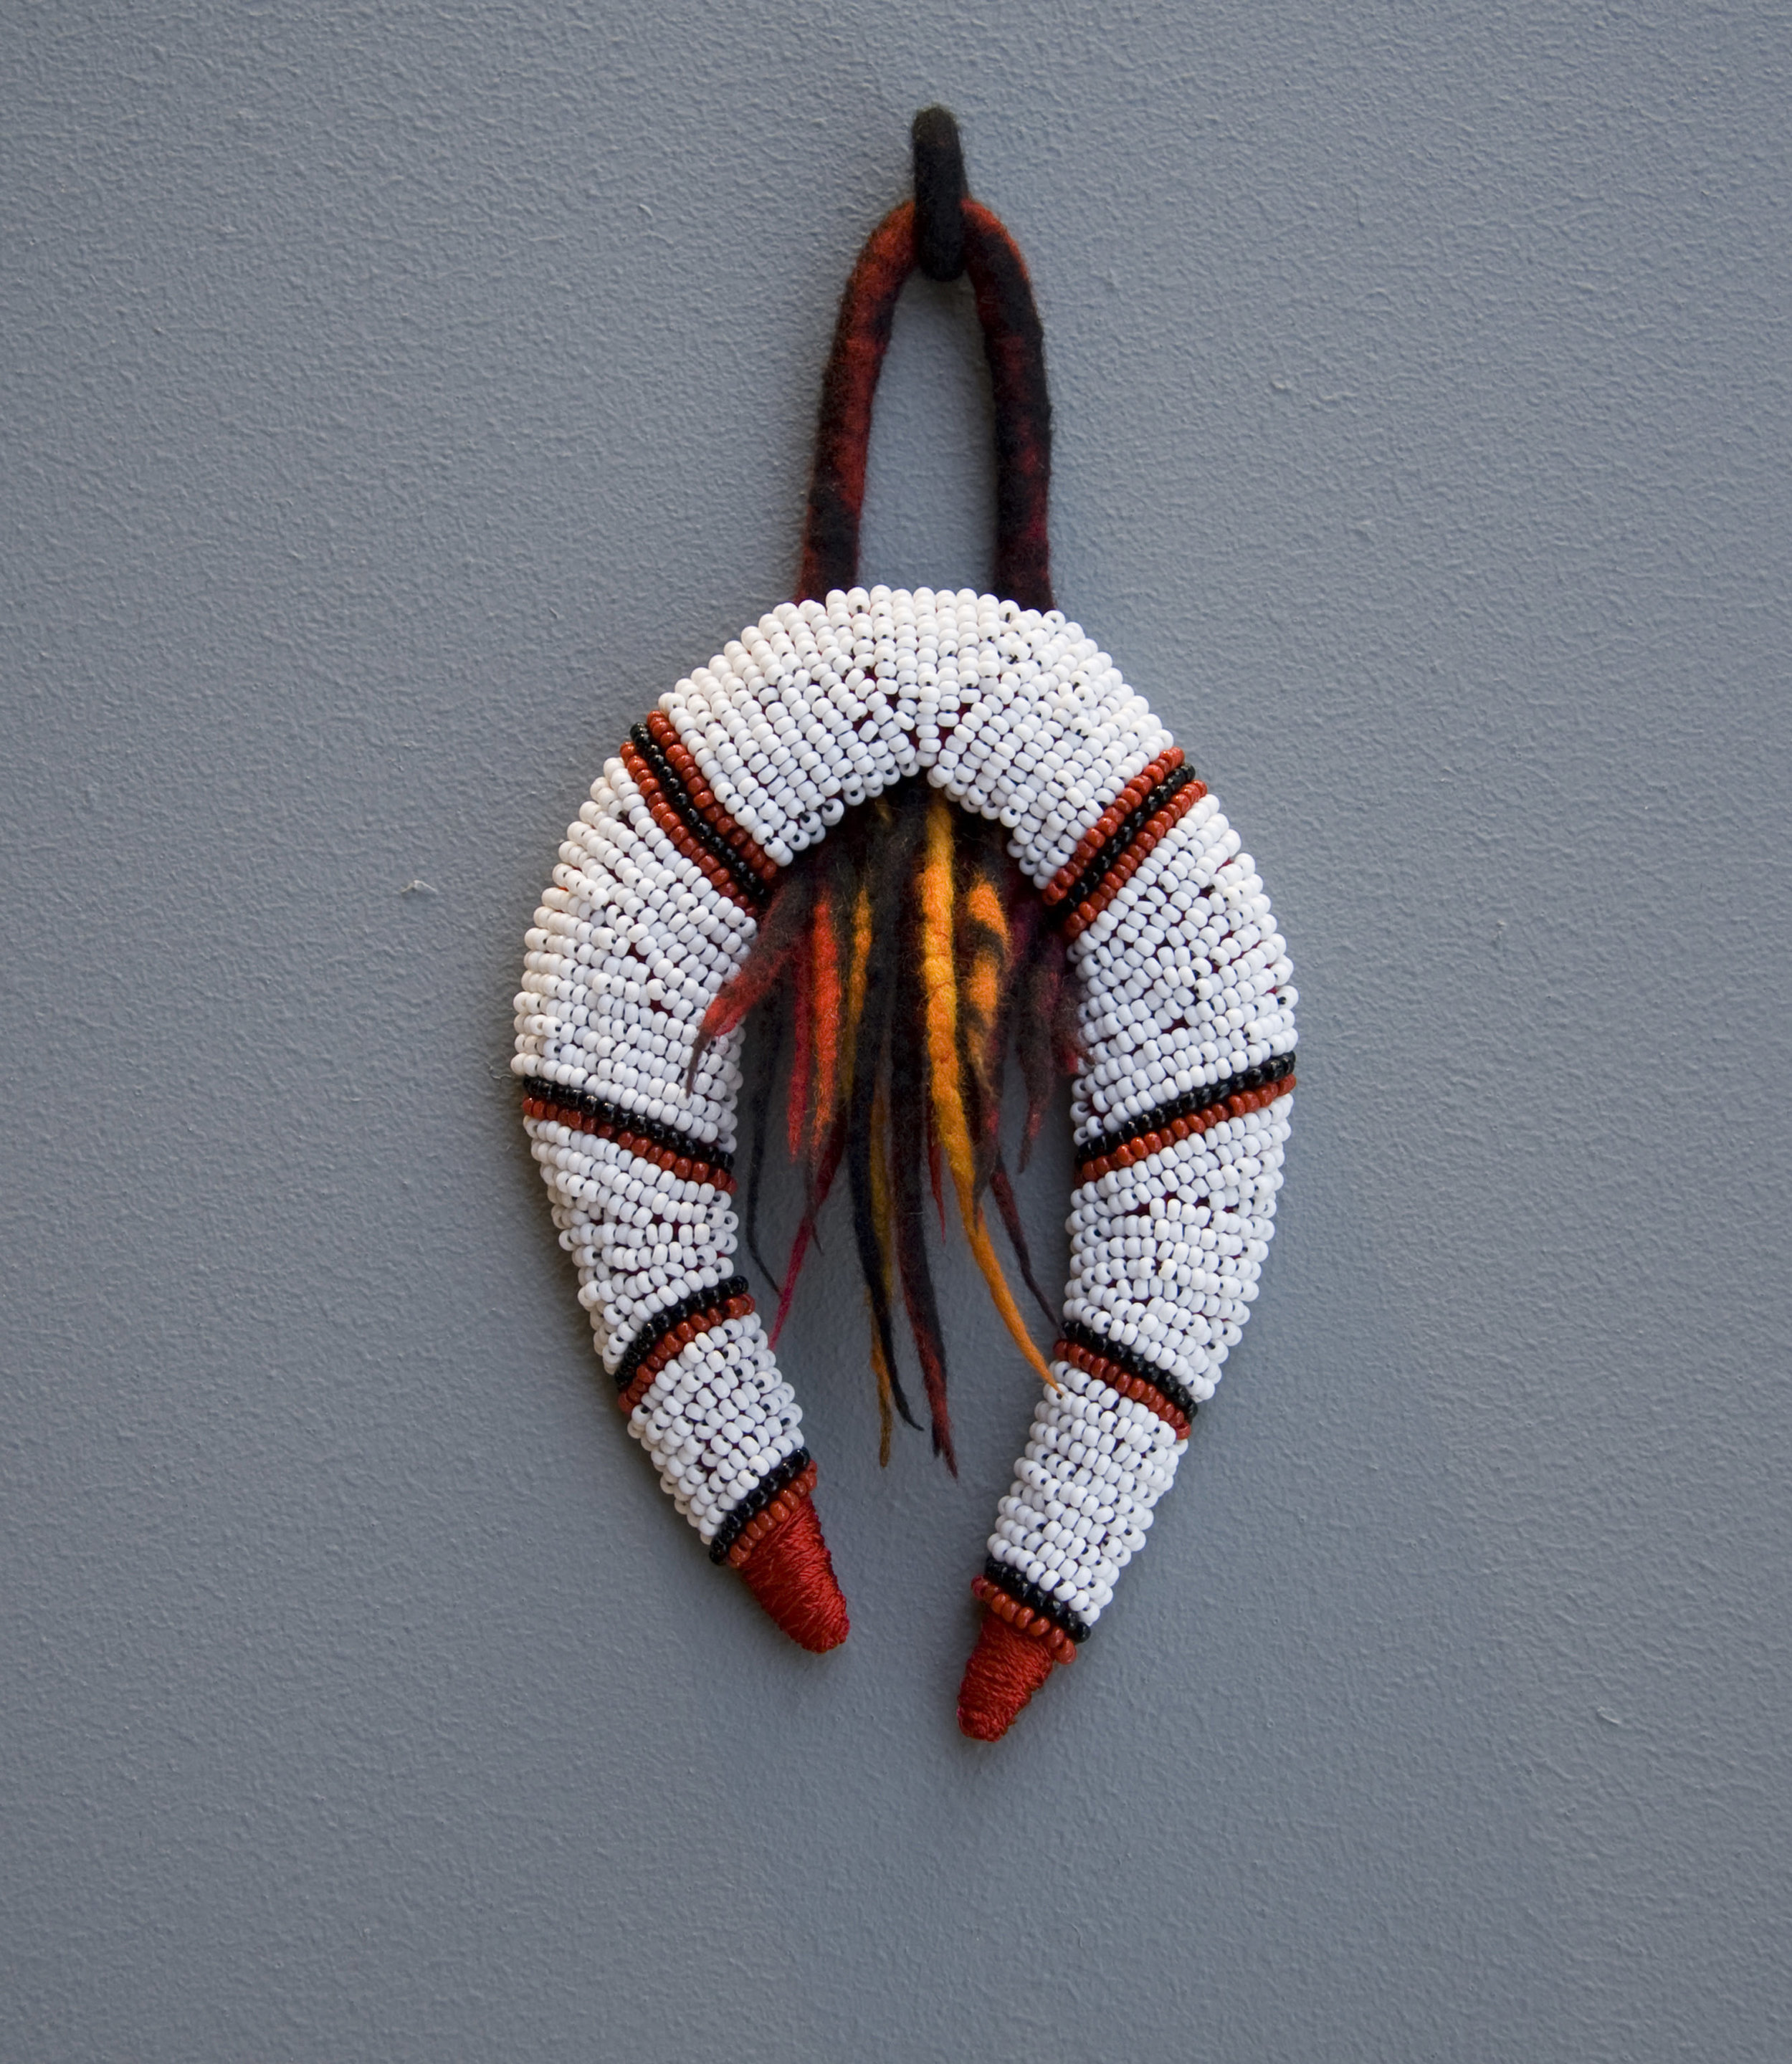 Itzikker (2010). Felt, beads & thread.